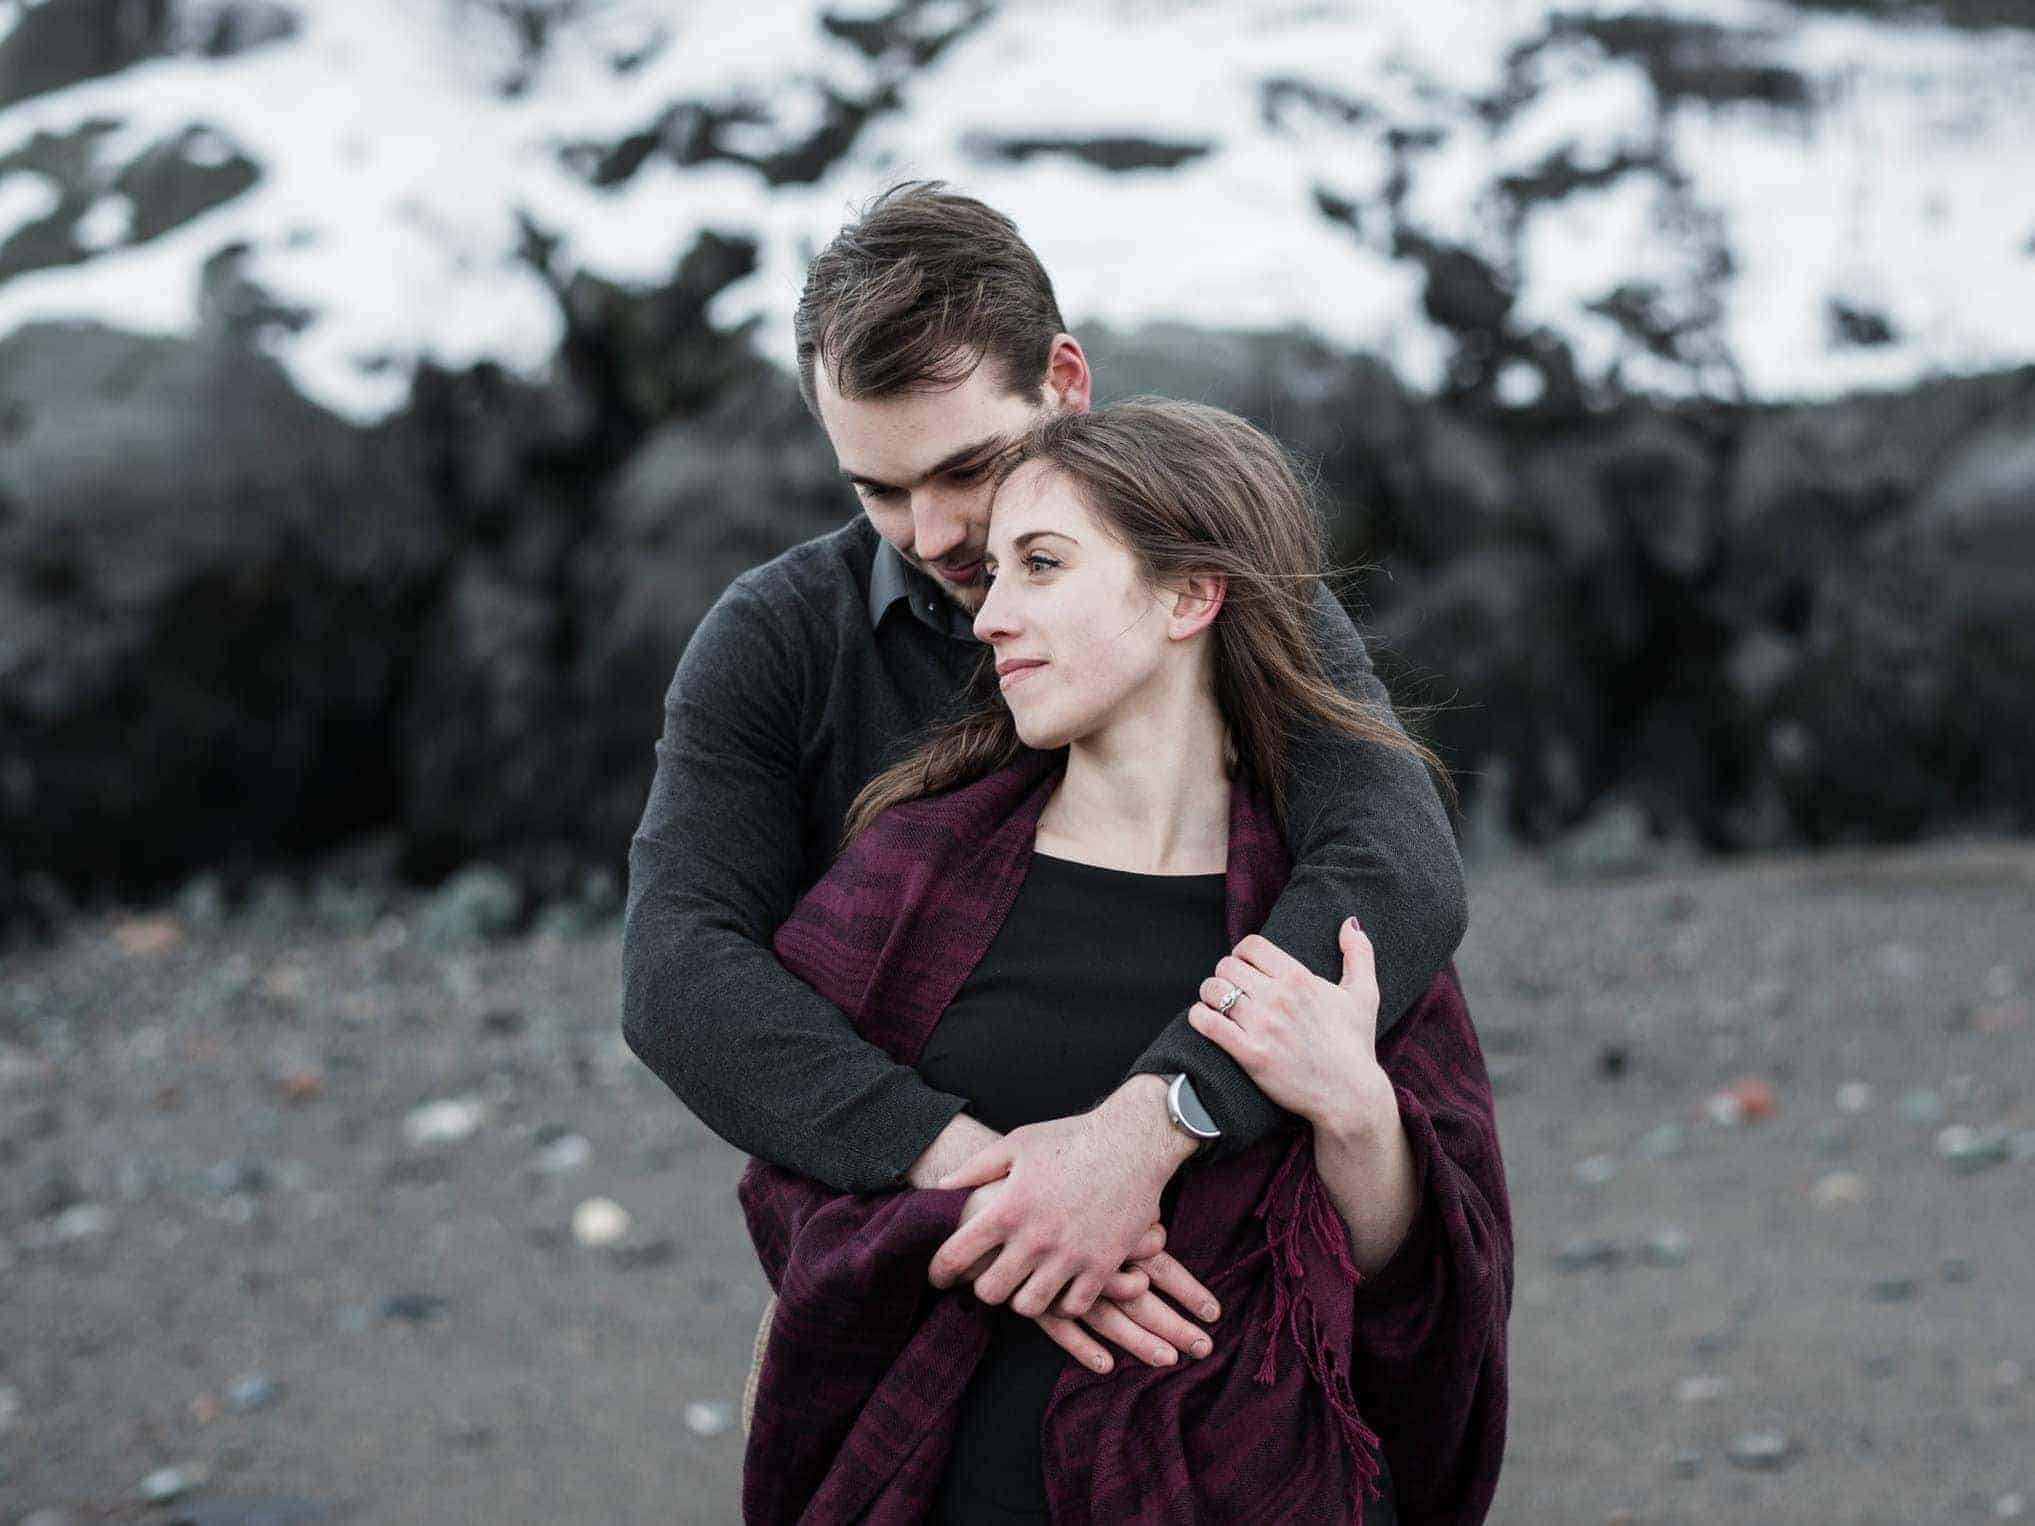 Our Engagement Photos - Part One